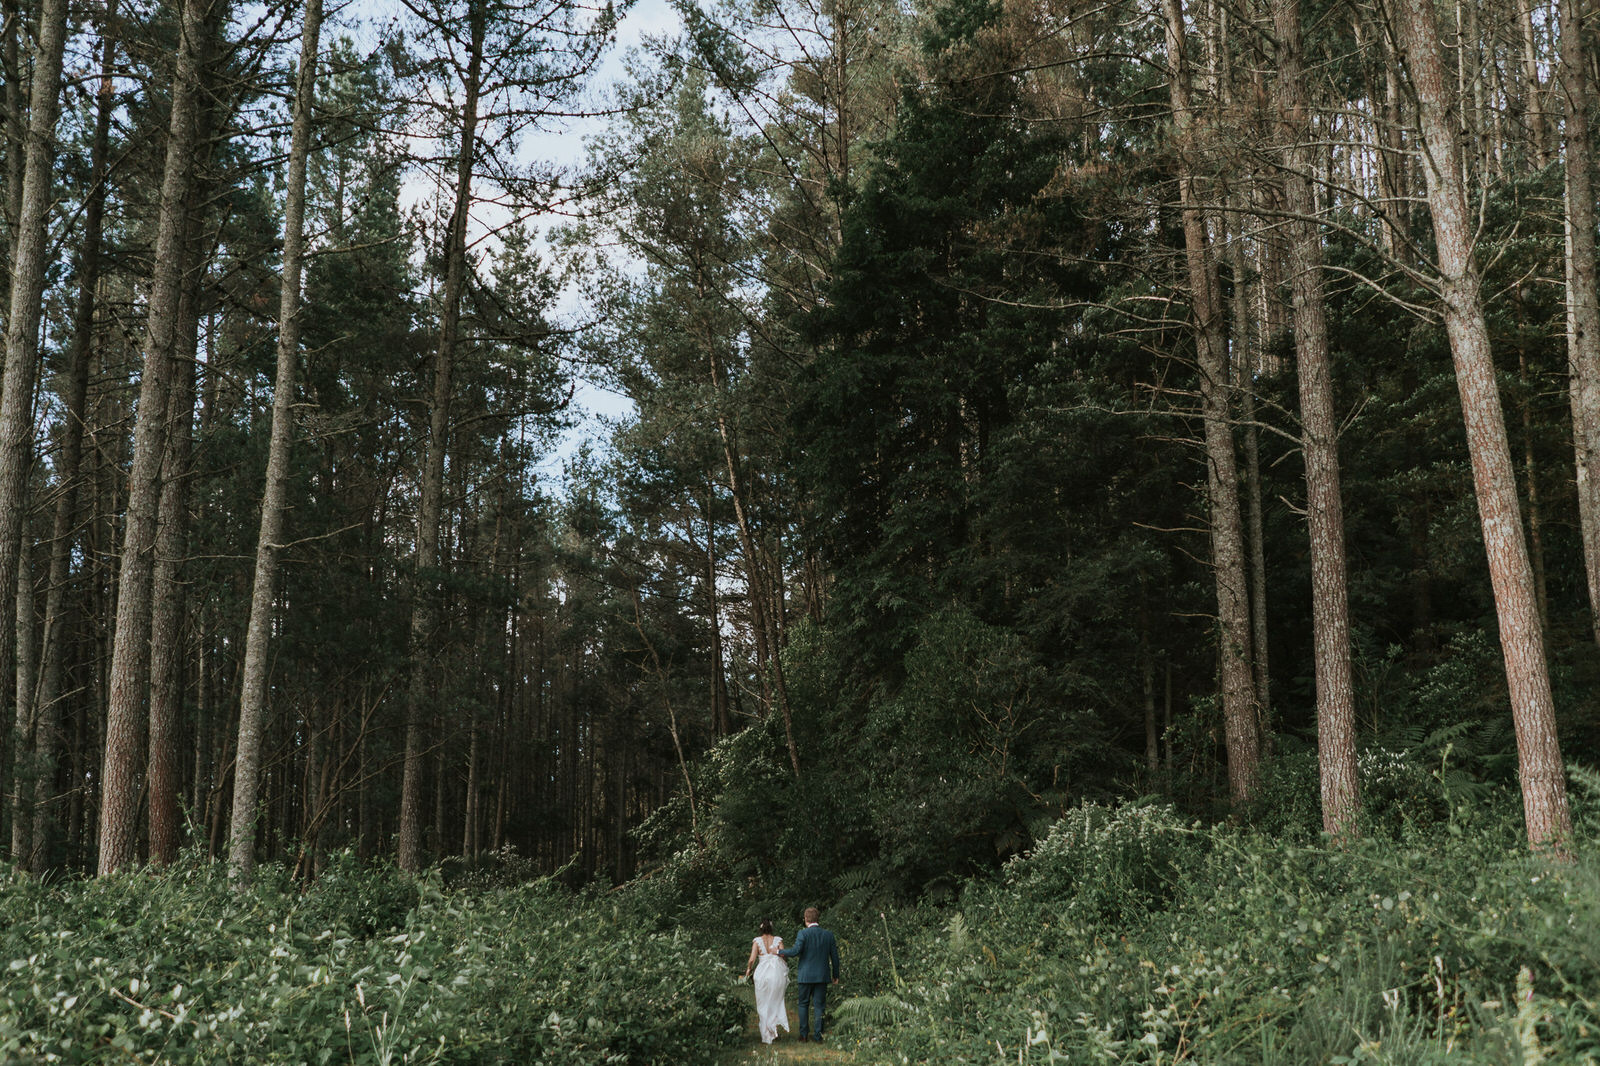 newfound-c-j-old-forest-school-wedding-1739-A9_07216